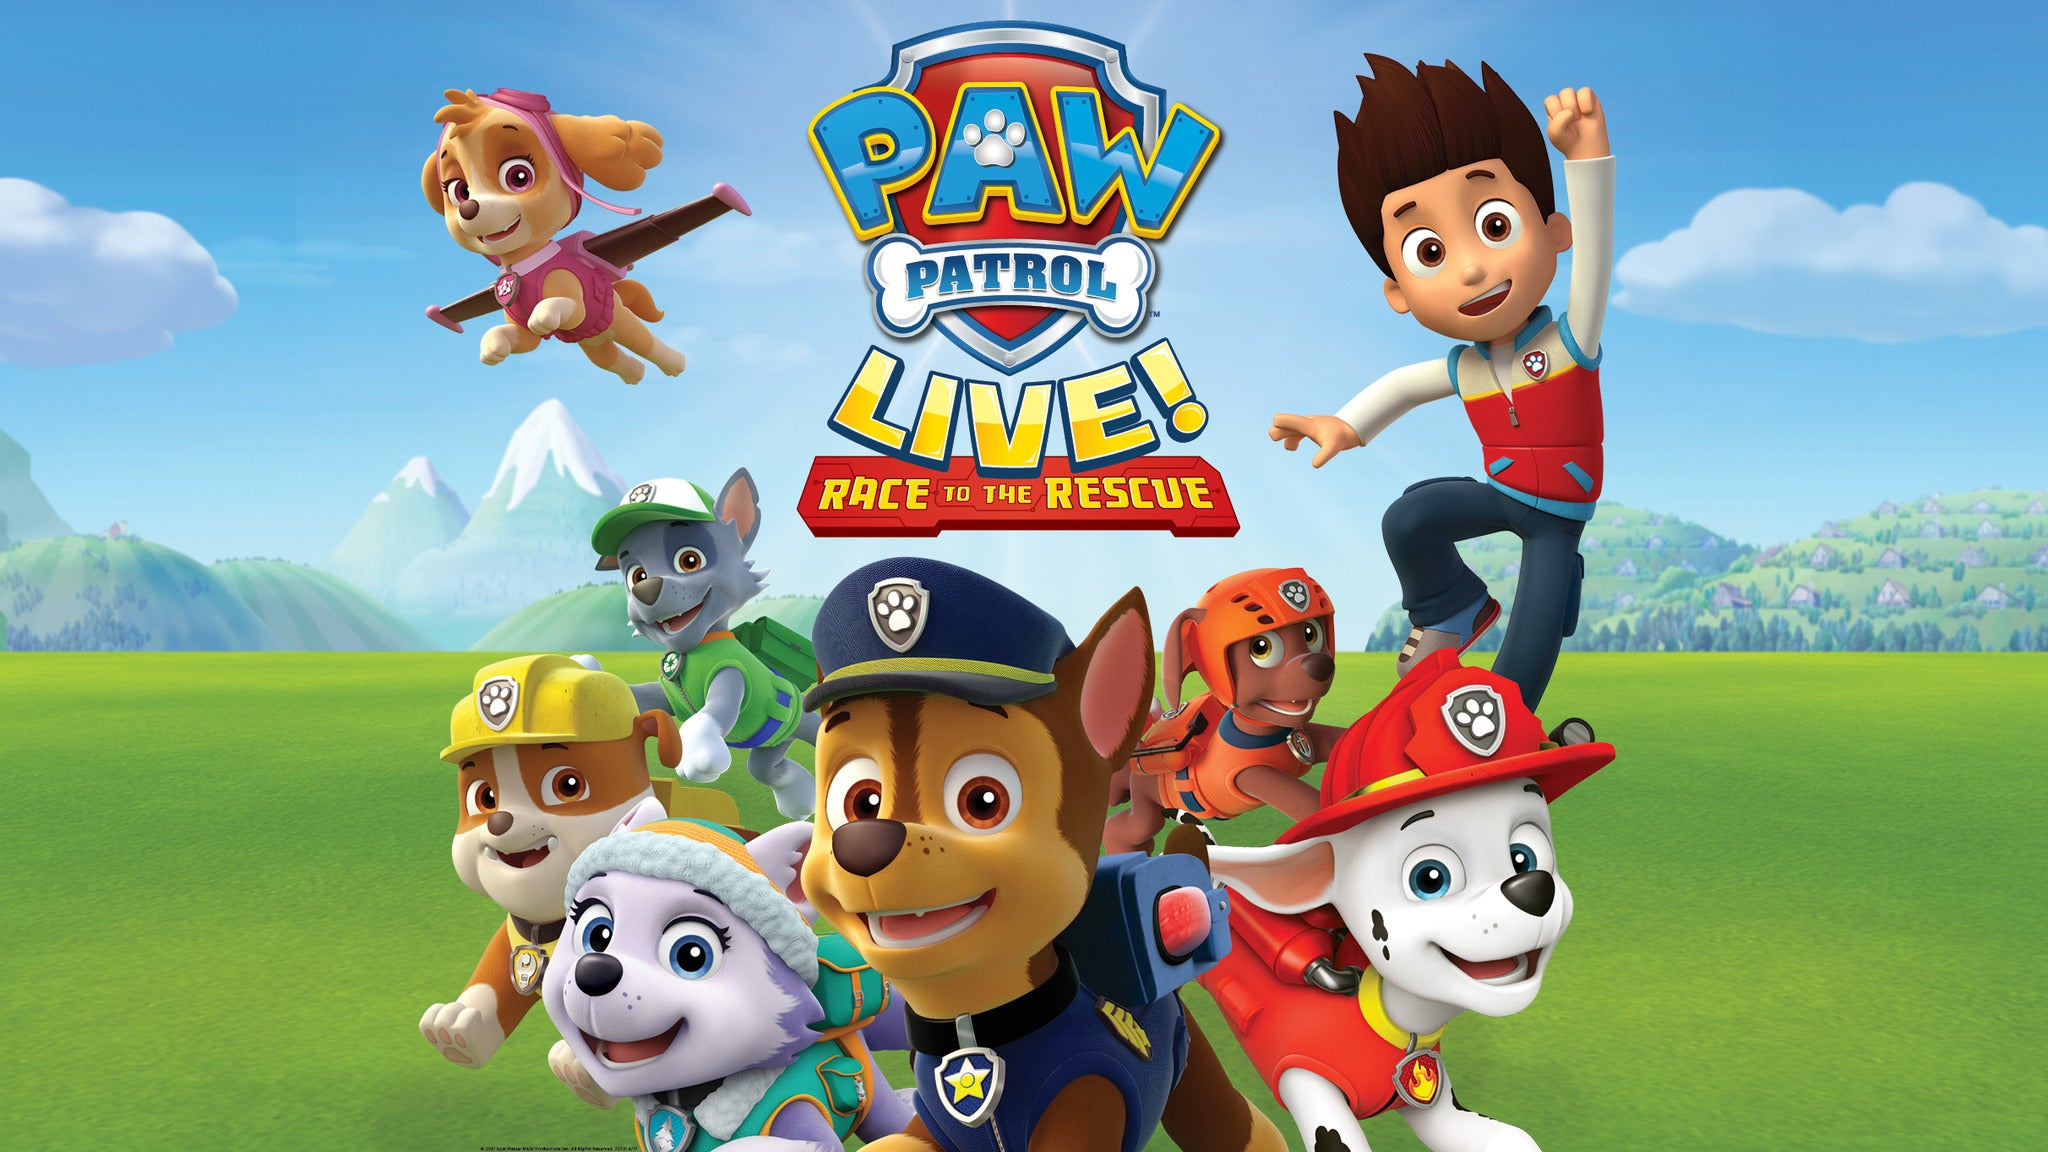 PAW Patrol Live!: Race to the Rescue